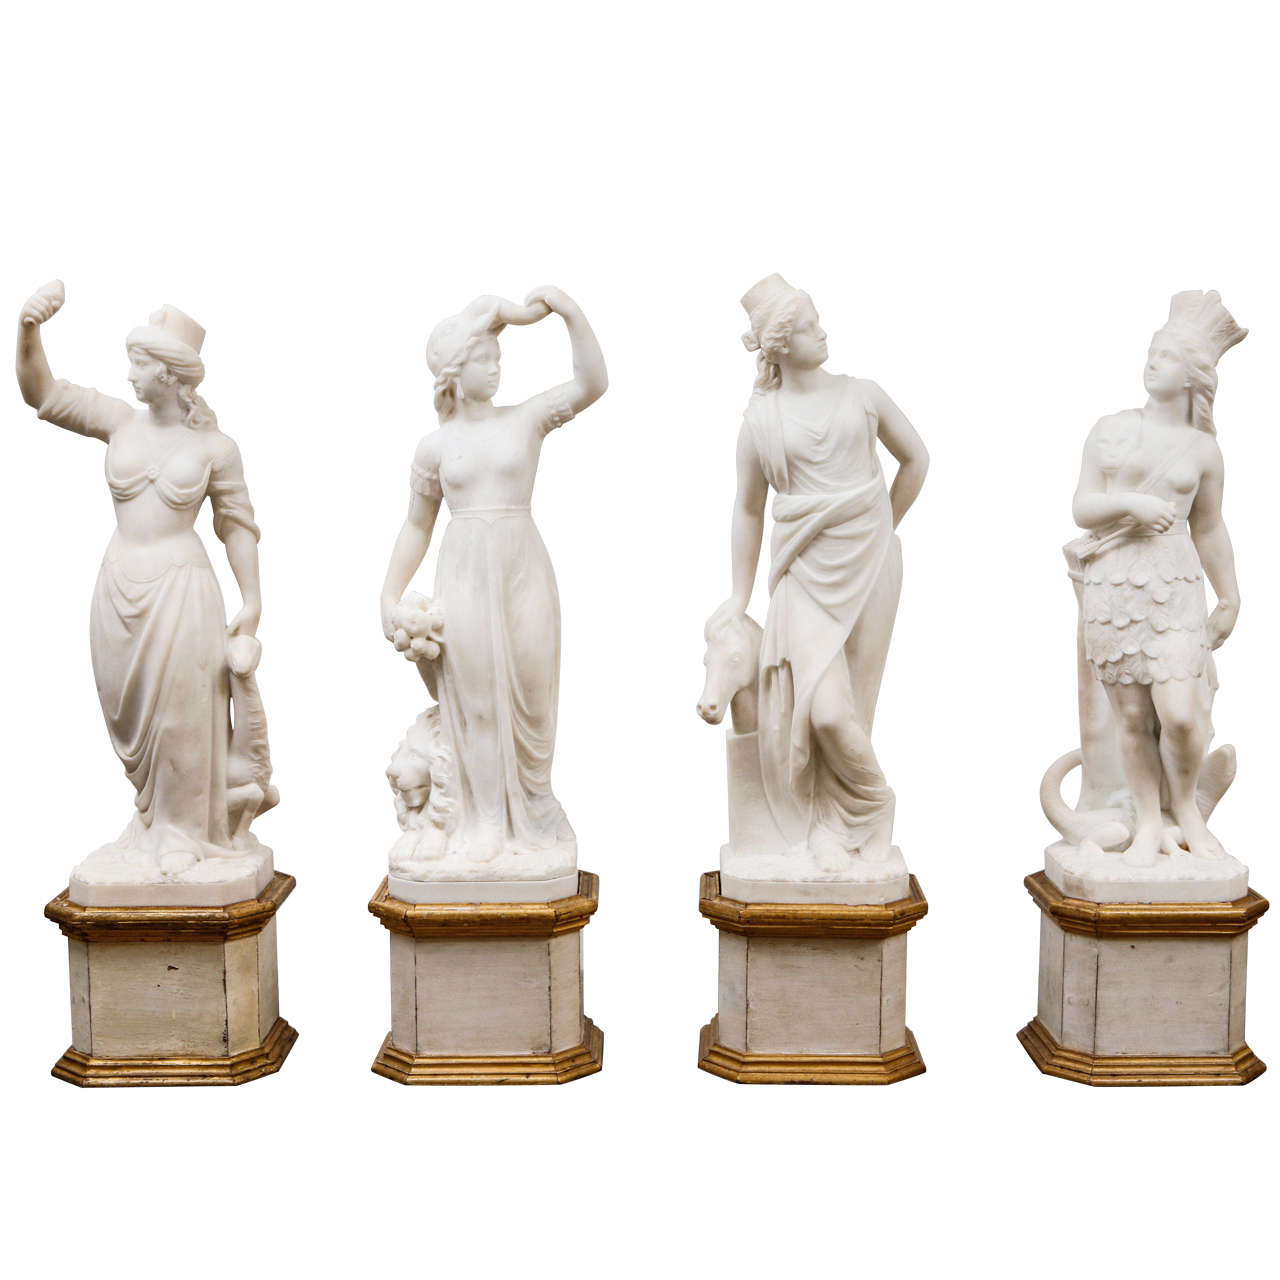 19th Century Italian Carrara Marble Statues of the Four Continents